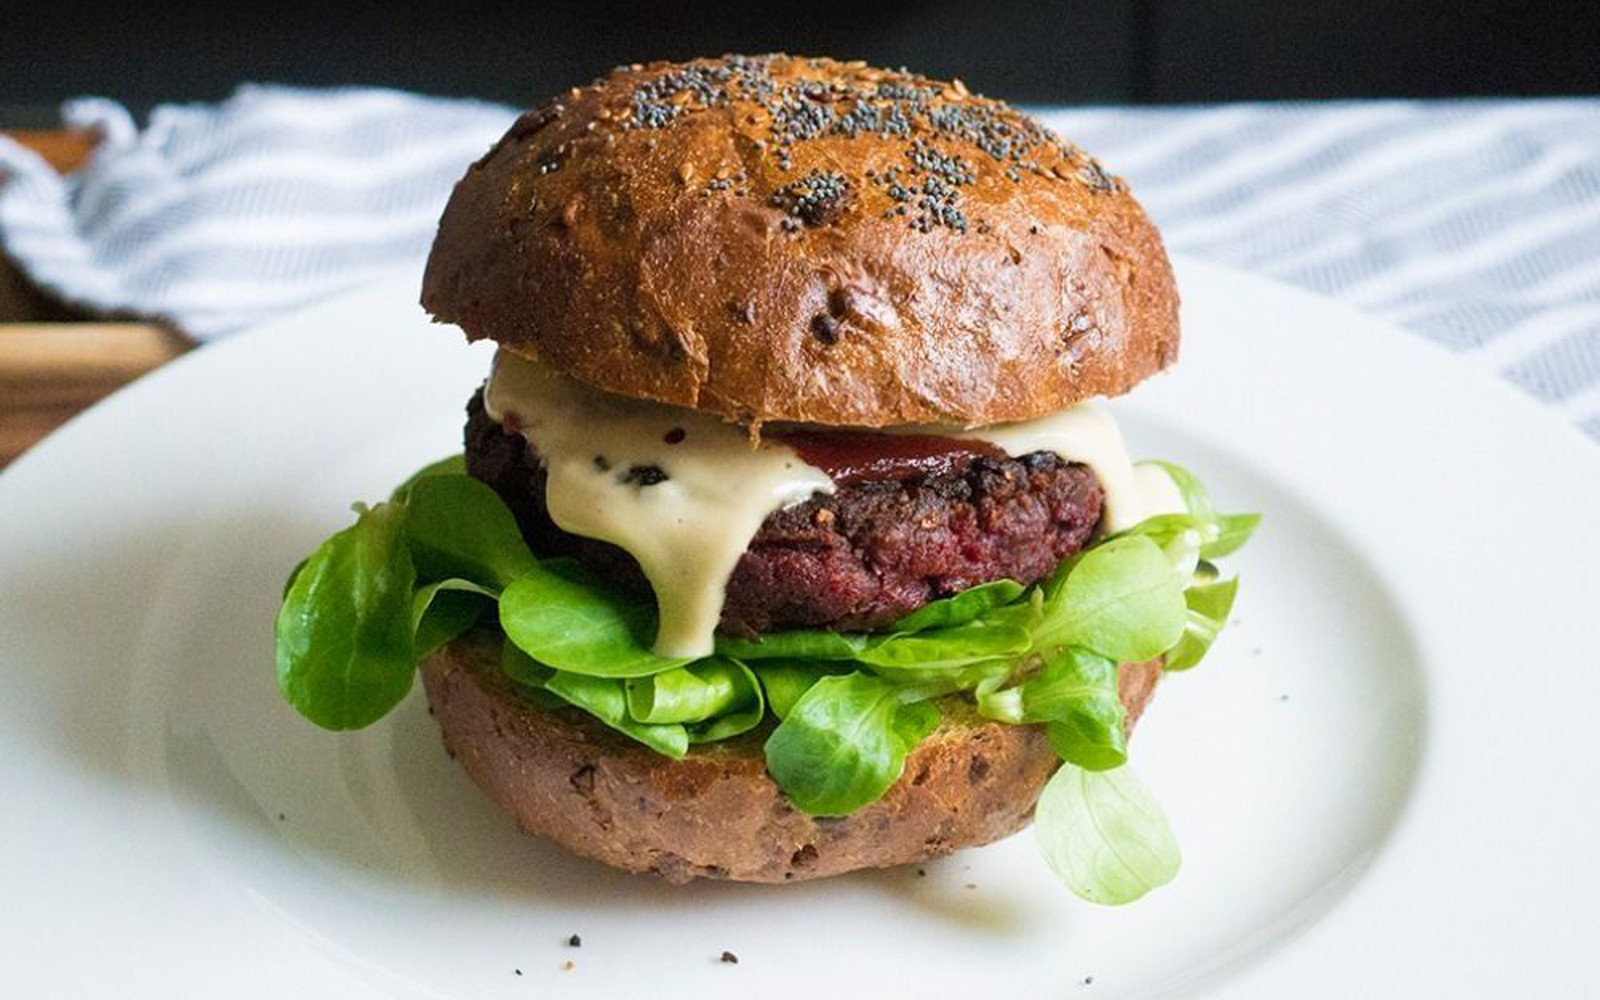 Meaty Beet Burger With Cashew Cheese [Vegan, Gluten-Free]